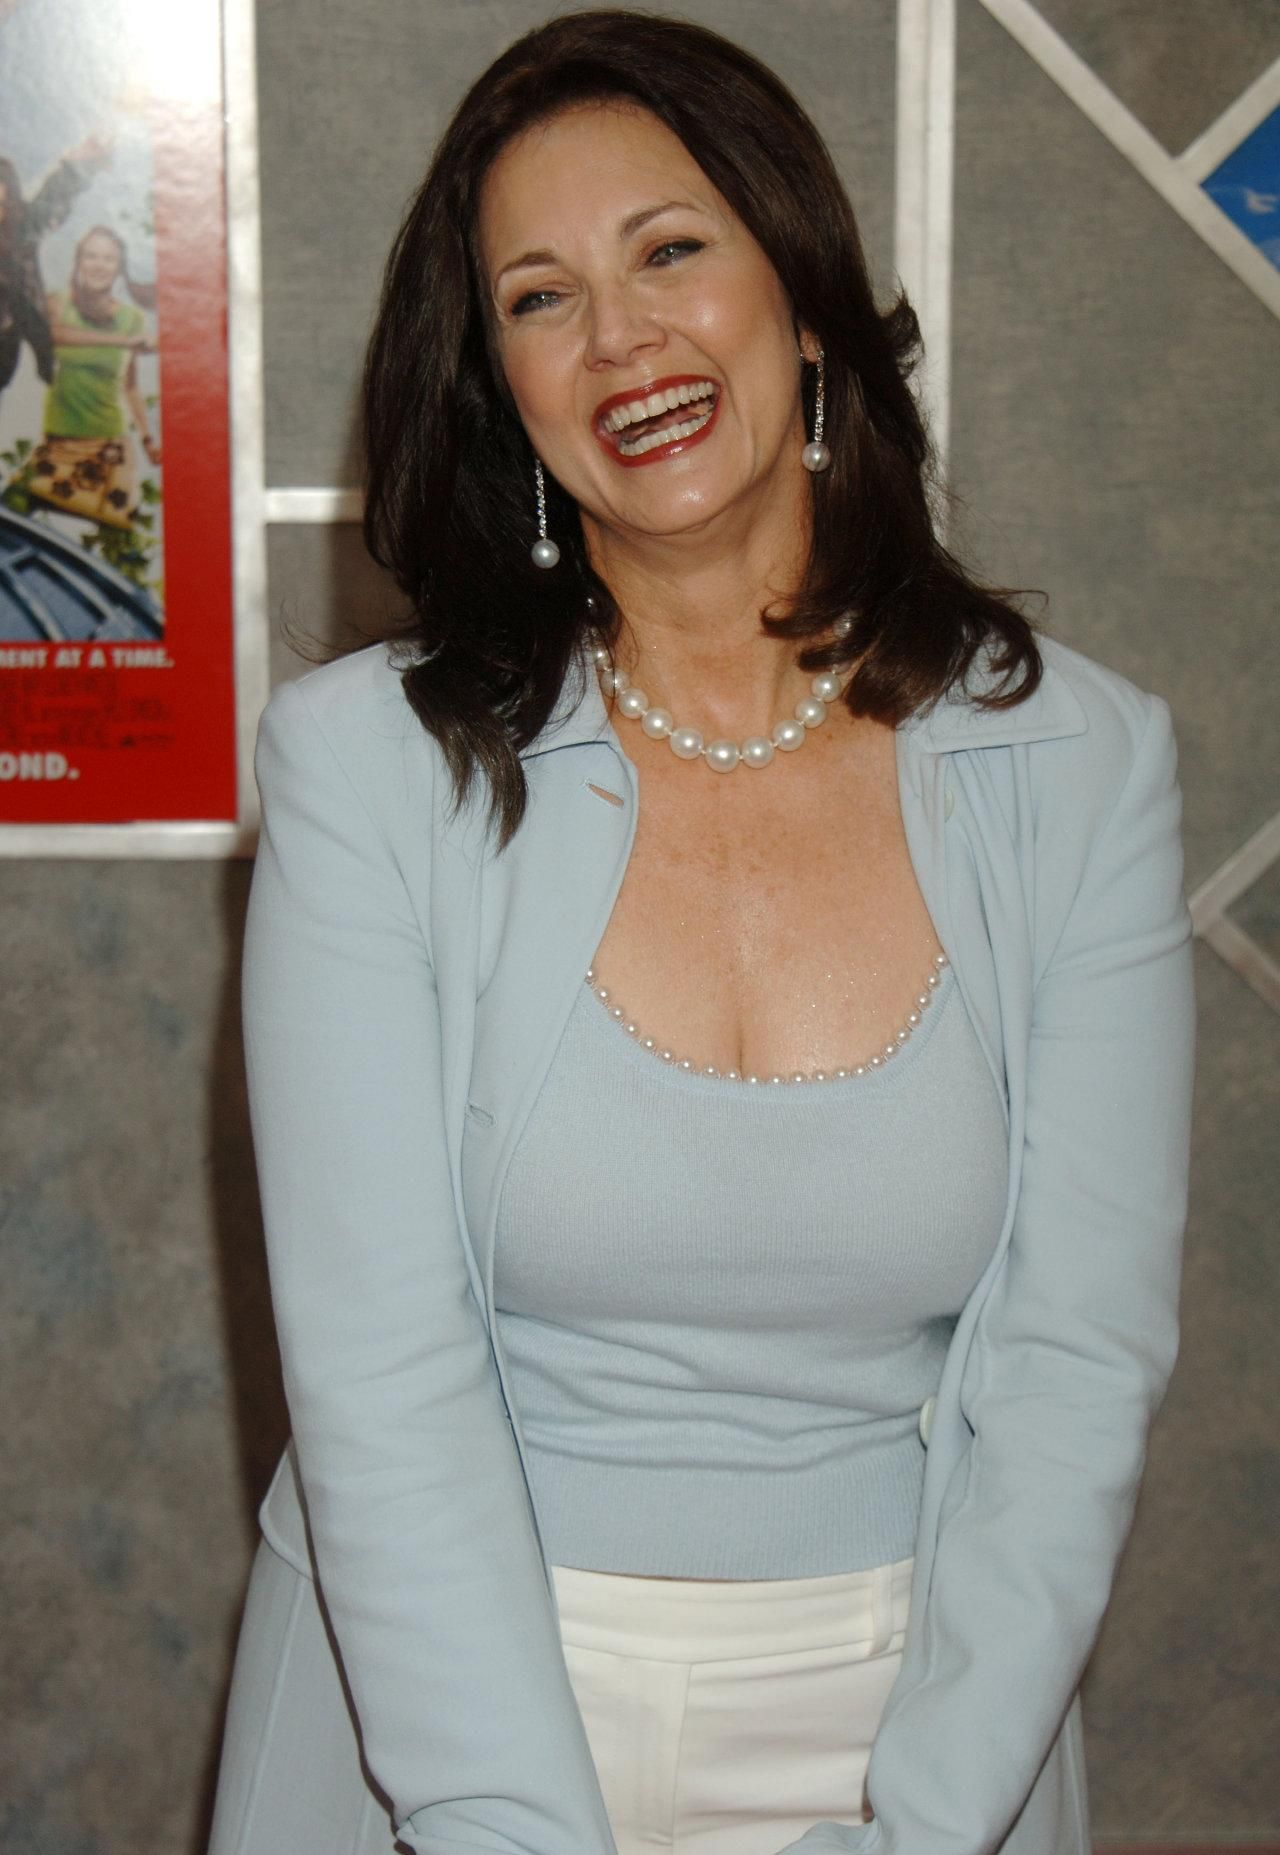 lynda carter 2017lynda carter fallout 4, lynda carter tribute, lynda carter - good neighbor, lynda carter young, lynda carter train train, lynda carter good neighbor lyrics, lynda carter 2017, lynda carter 2016, lynda carter songs, lynda carter man enough lyrics, lynda carter lyrics, lynda carter speaker, lynda carter - portrait, lynda carter listal, lynda carter photo, lynda carter magnolia, lynda carter wiki, lynda carter wikipedia, lynda carter oblivion, lynda carter wonder woman